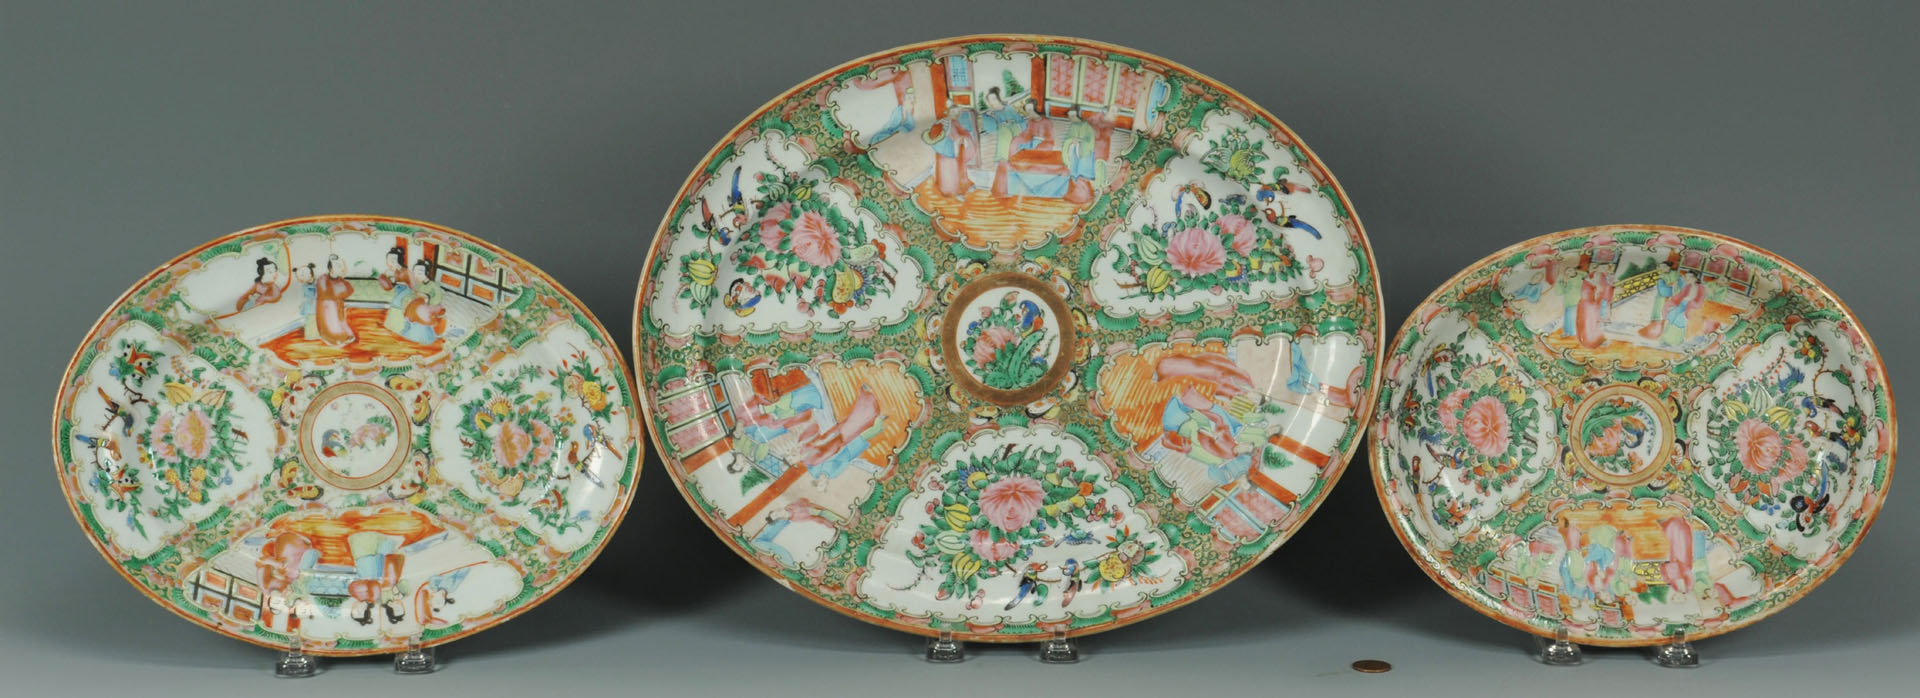 Lot 244: Chinese Rose Medallion, late 19th century